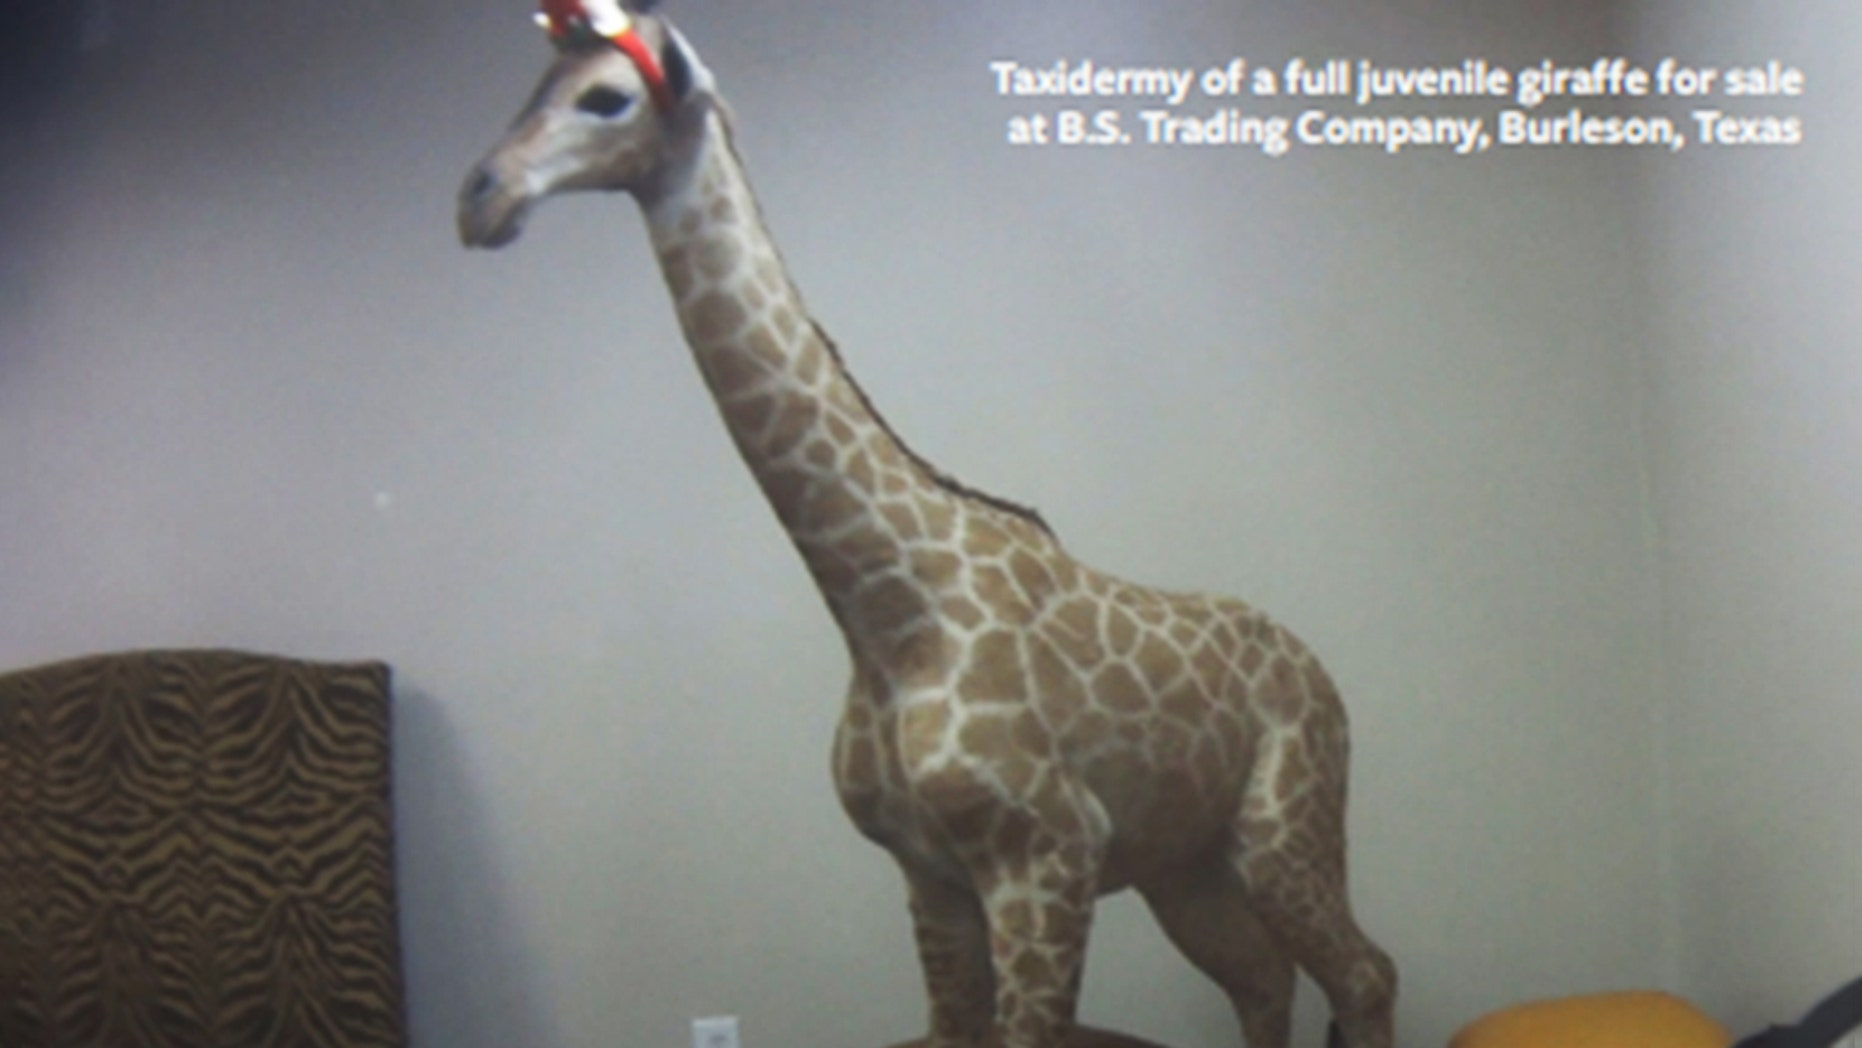 A taxidermy of a young giraffe pictured for sale at B.S. Trading Company in Burleson, Texas, according to the Humane Society International. The group said in a new report that more than 40,000 giraffe products and pieces have been imported into the U.S. throughout the last 10 years.